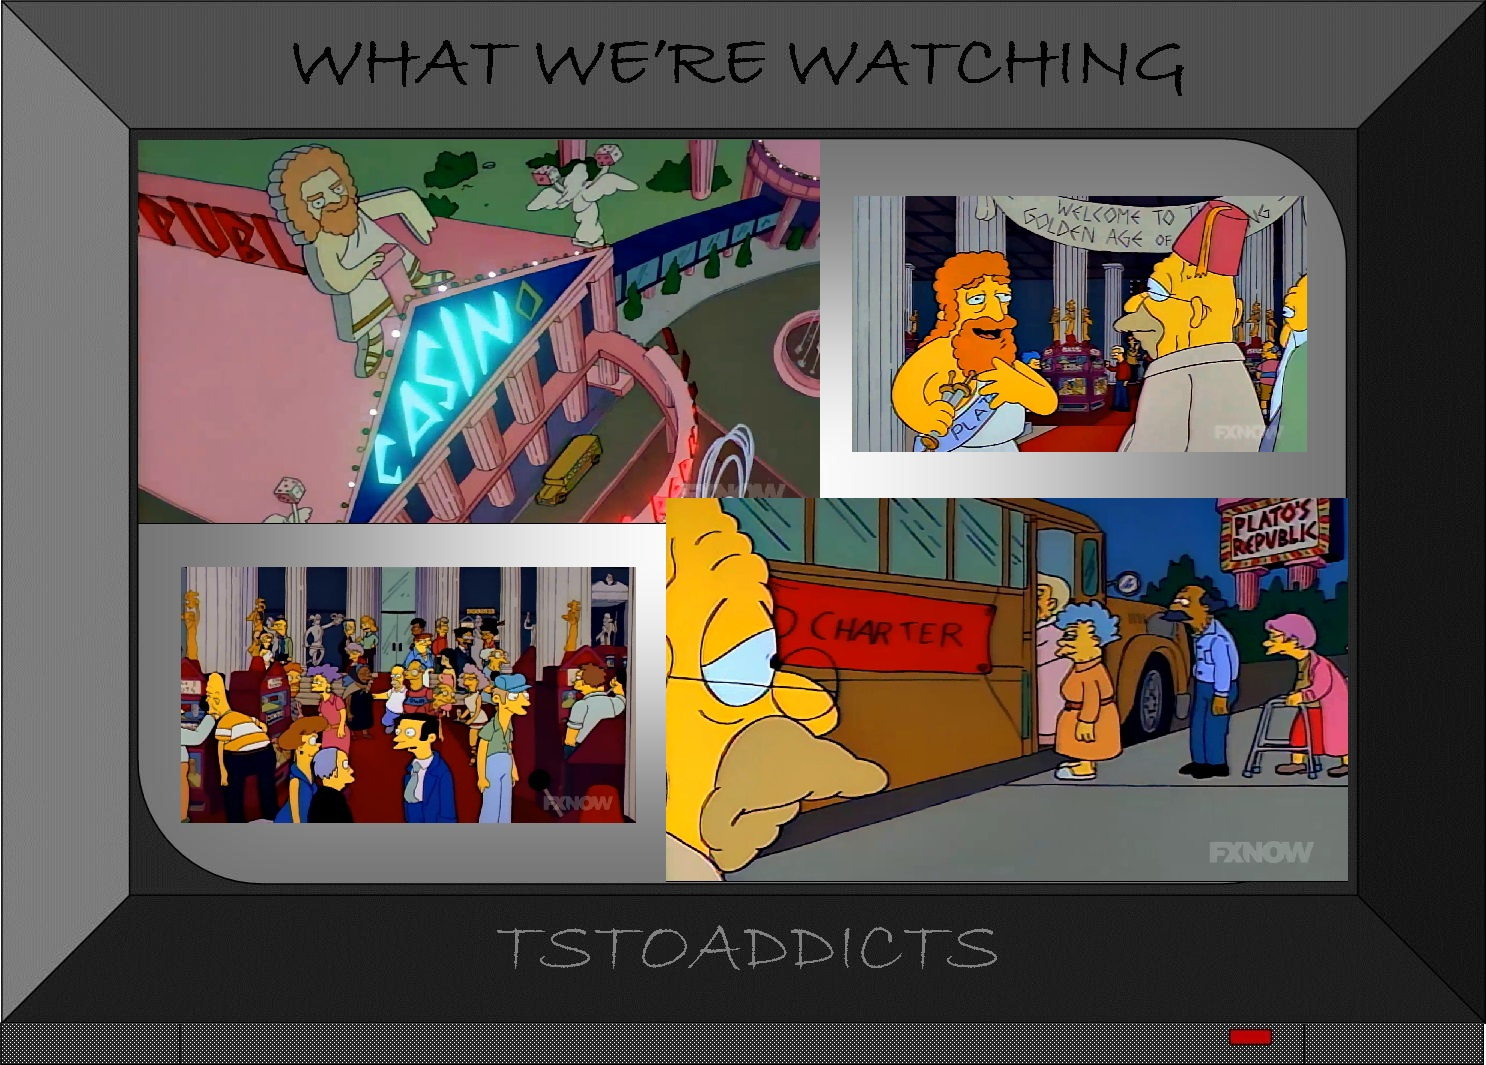 platos casino simpsons